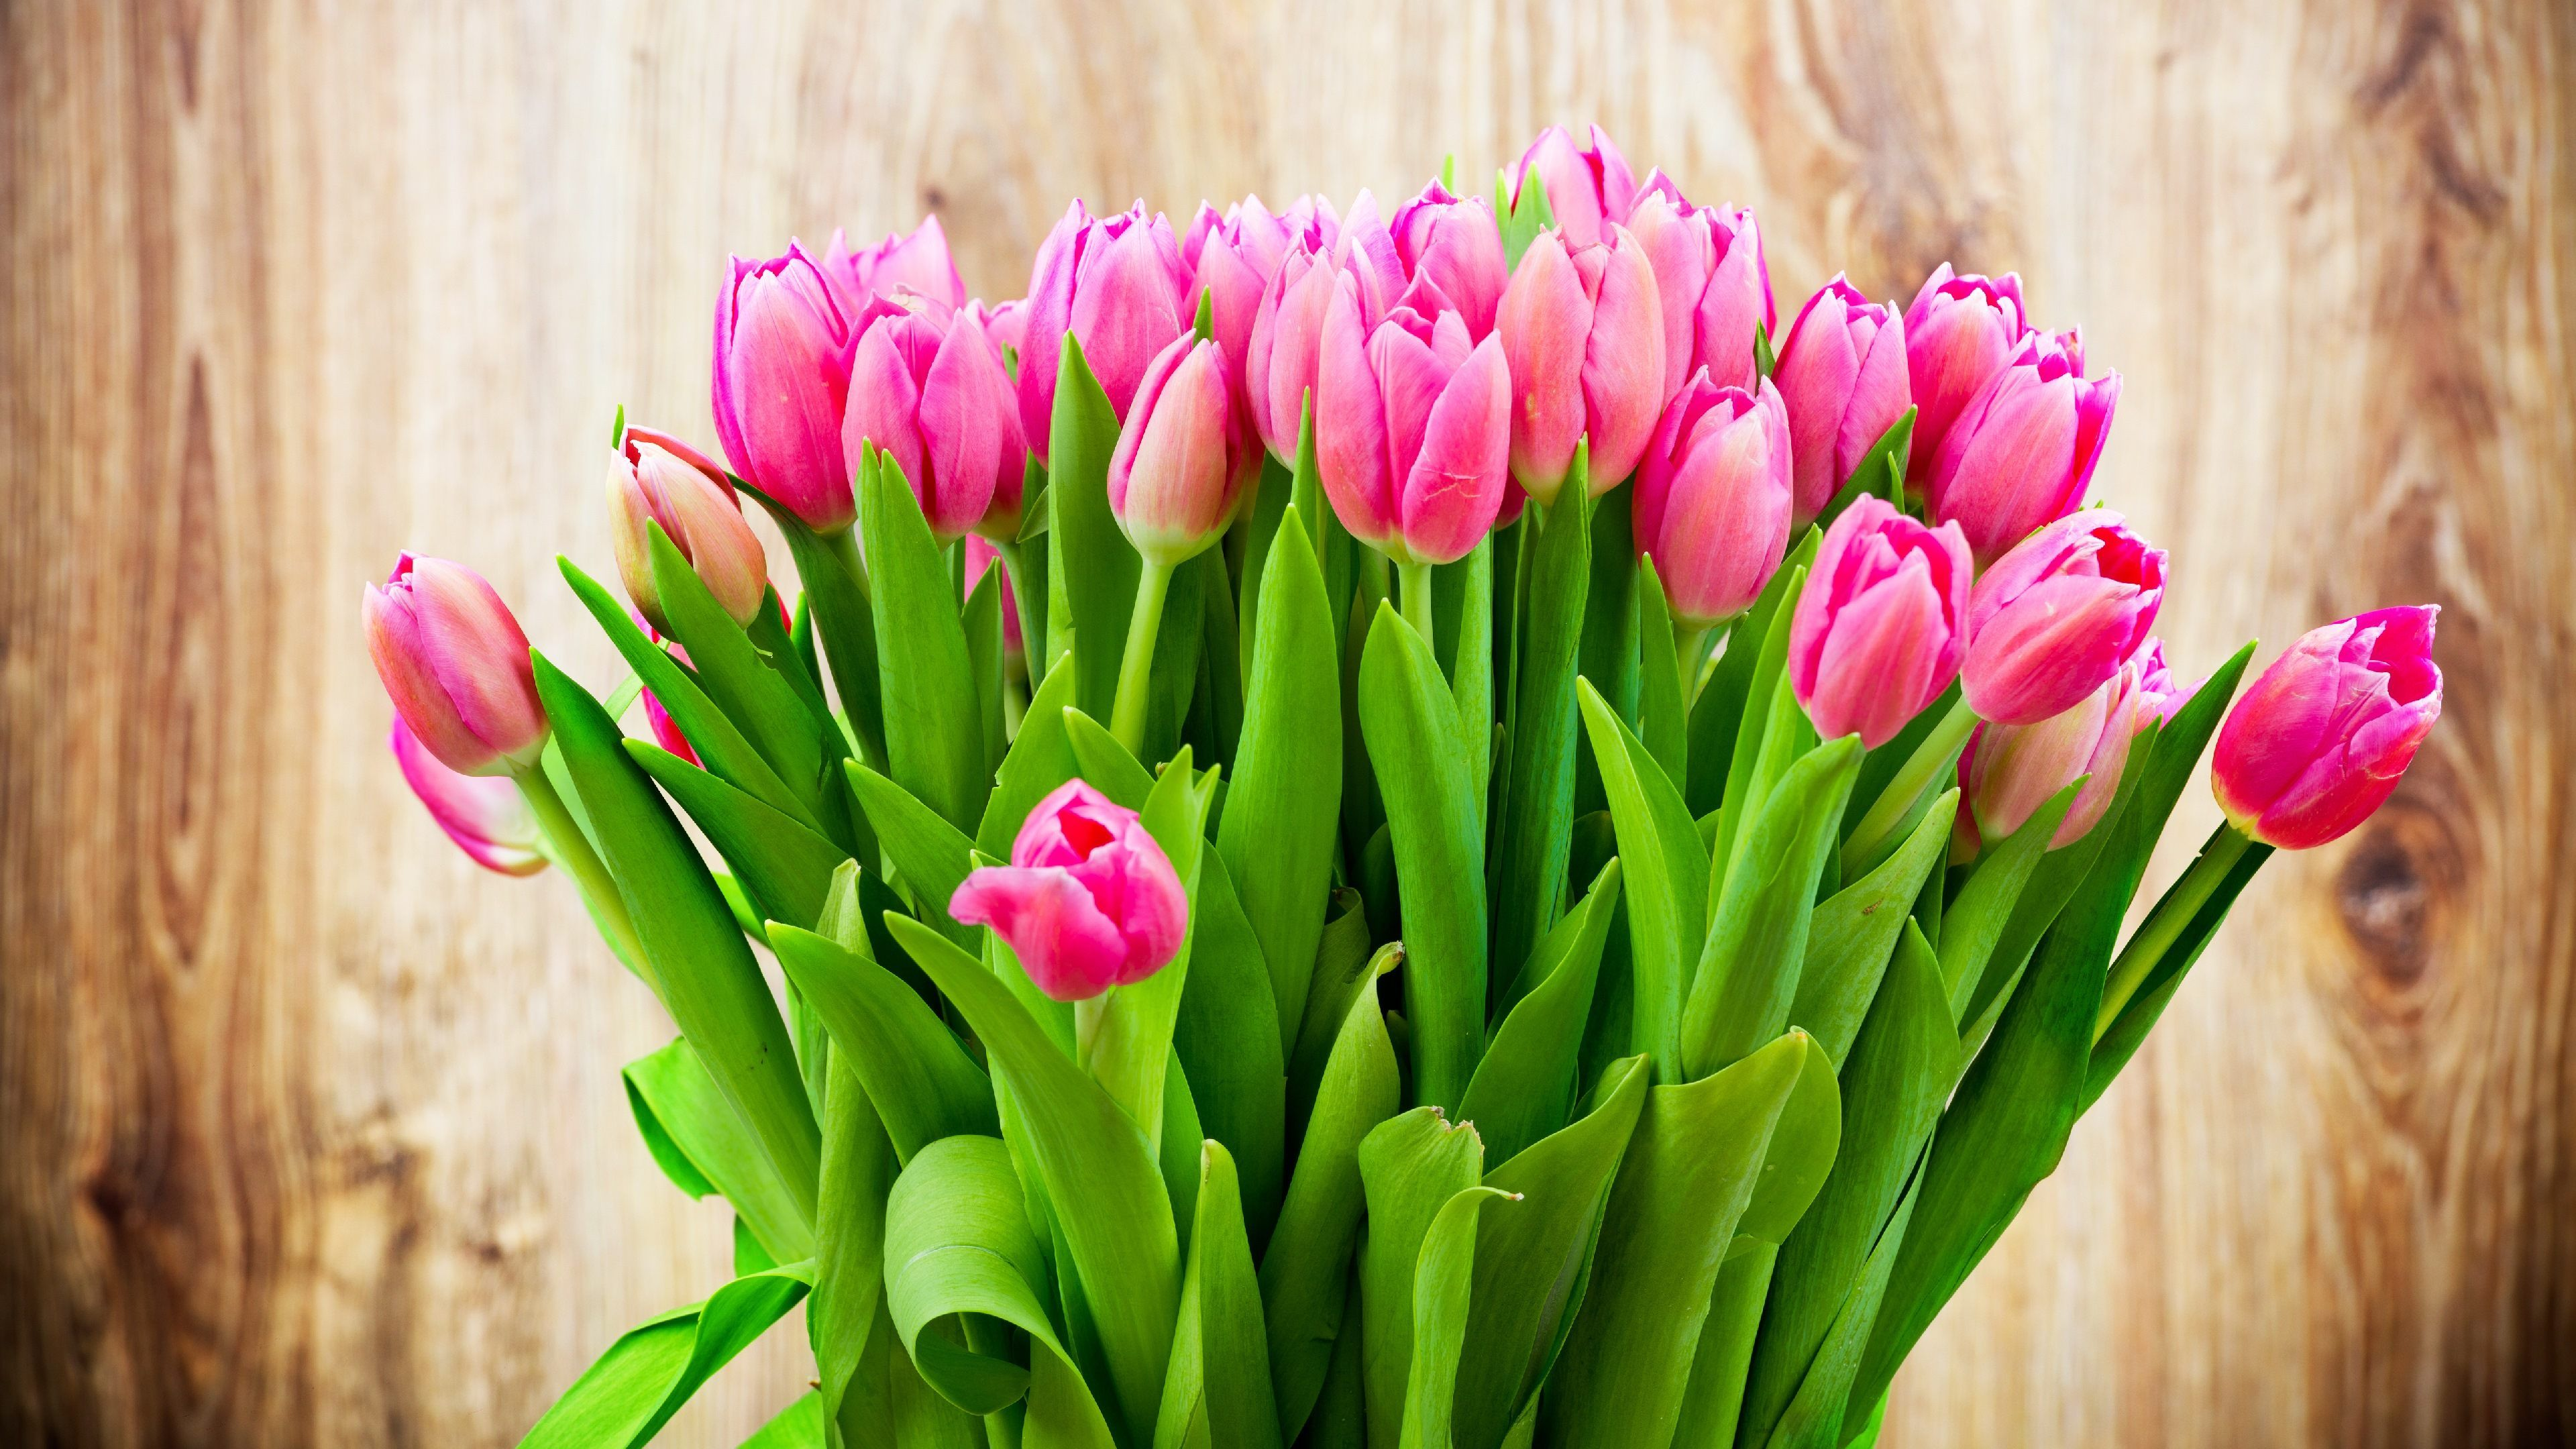 Tulip Flowers HD Wallpapers free download | HD Wallpapers ... for Green And Pink Flower Wallpaper  75tgx